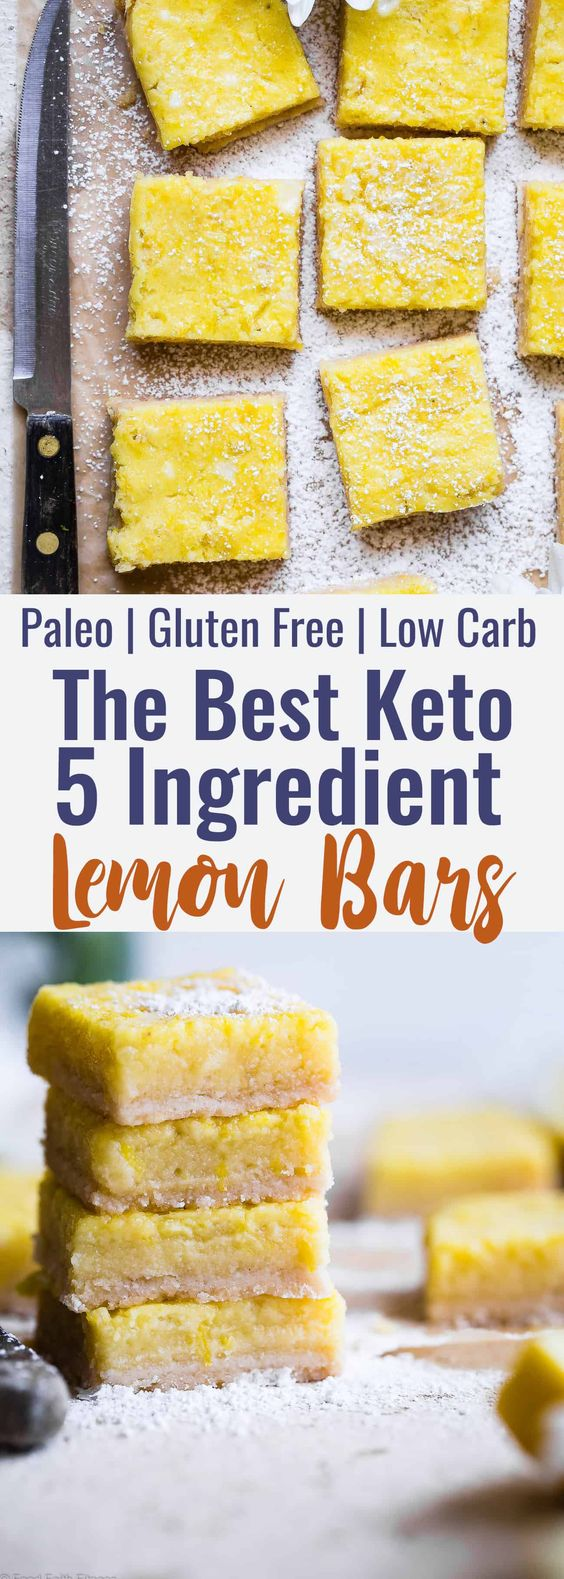 Keto Lemon Bars - These easy, gluten free lemon bars are only 5 ingredients and SO delicious! You will never believe they are only 100 calories, low carb and sugar free! | #Foodfaithfitness | #Glutenfree #Lowcarb #keto #sugarfree #healthy